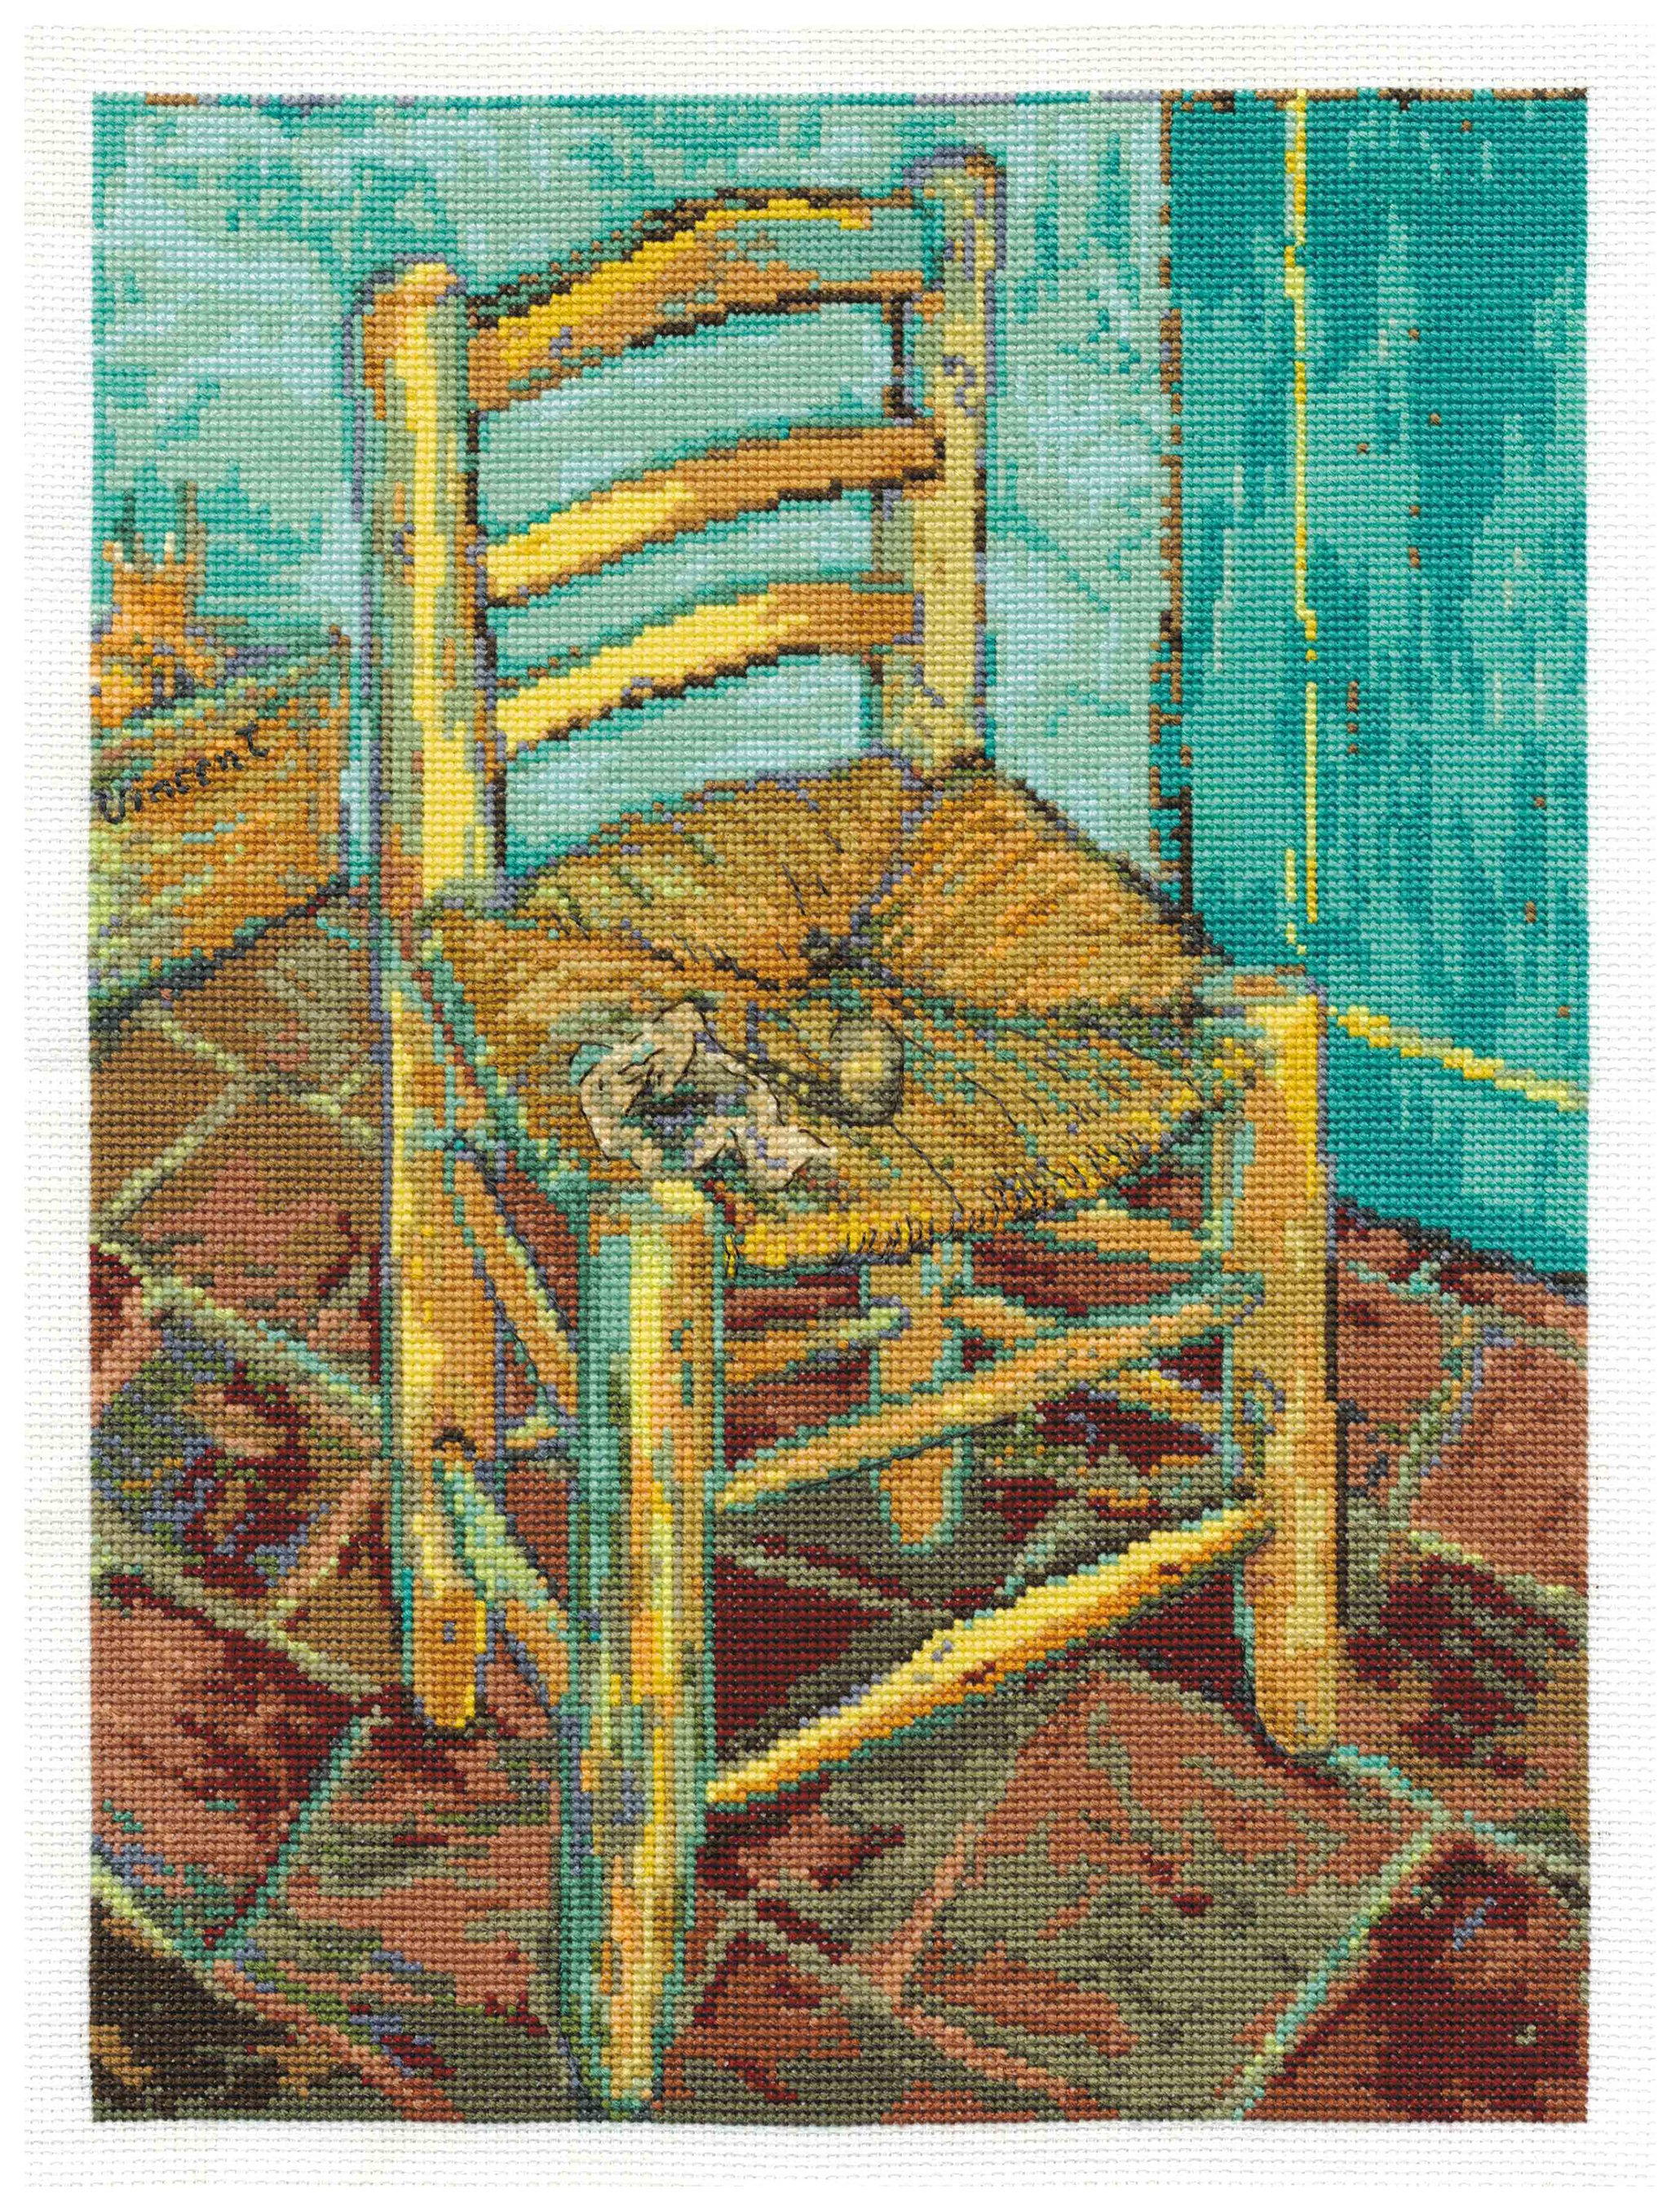 national-gallery-van-gogh-chair-cross-stitch-kit